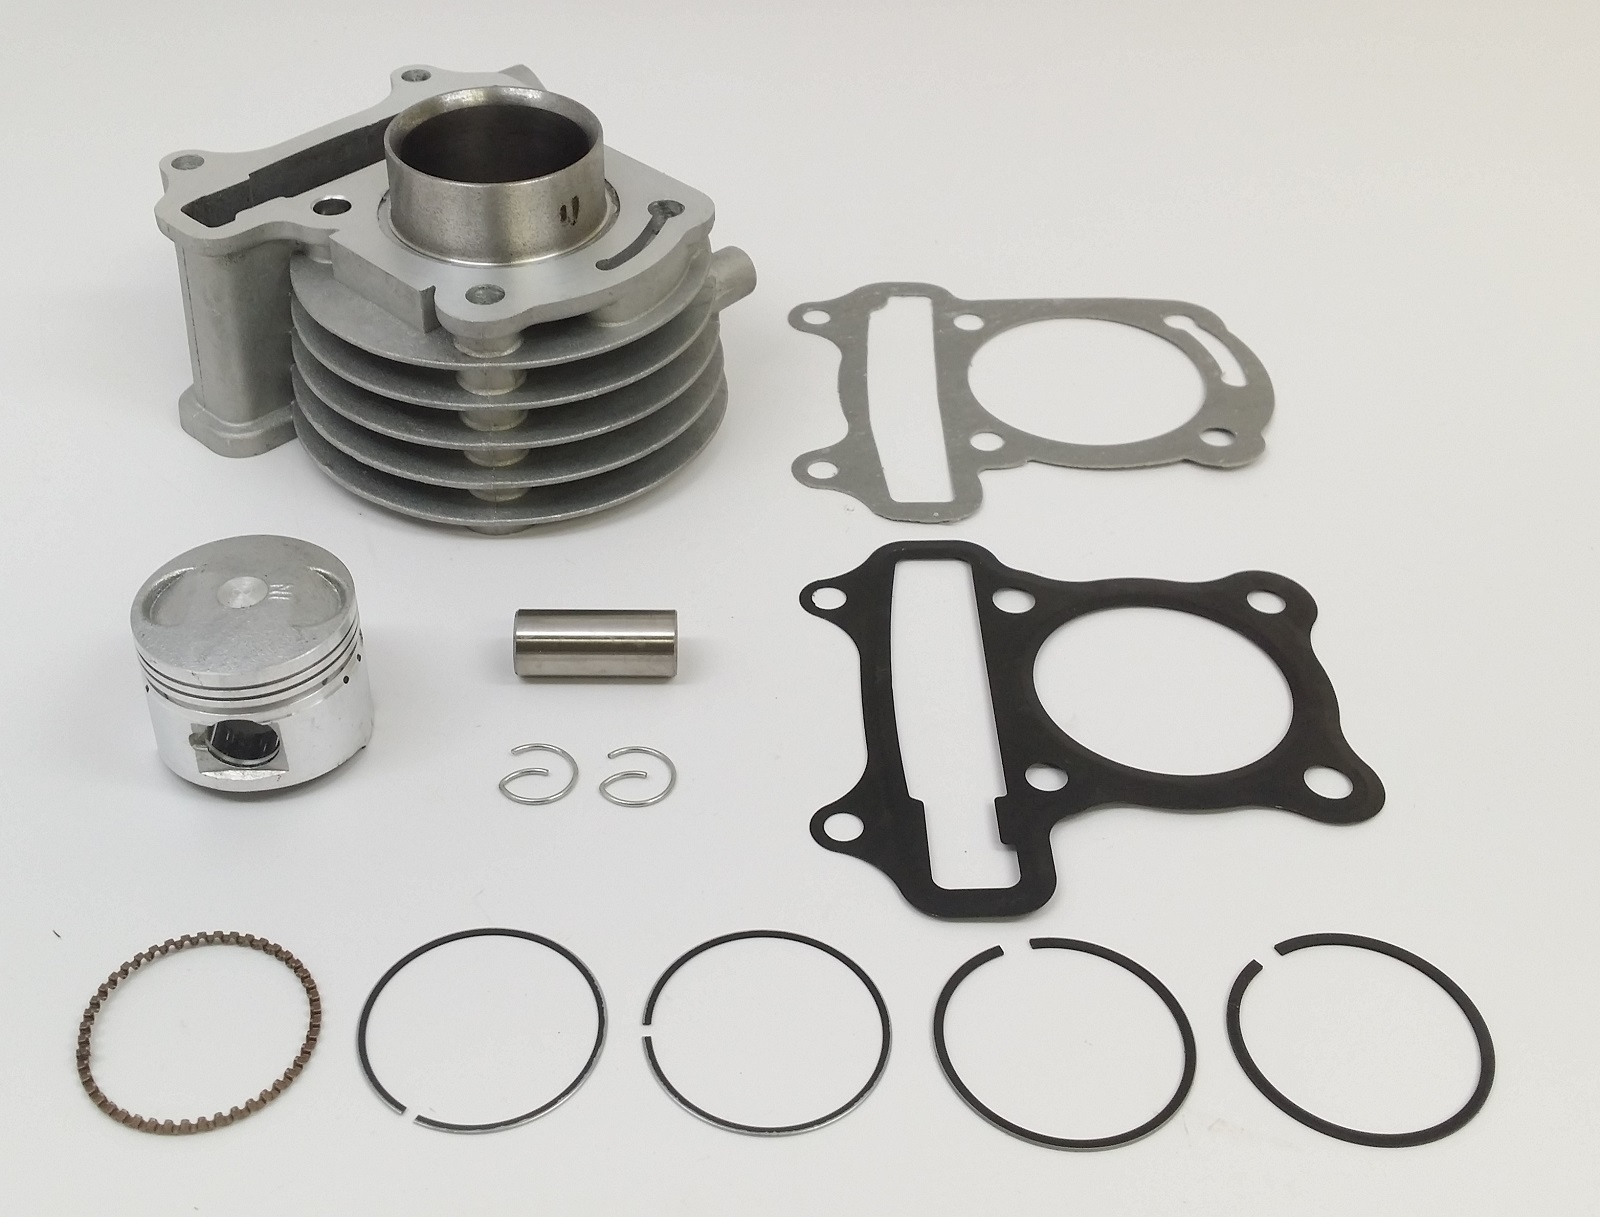 60cc Cylinder Kit 44mm GY6 Chinese Scooters Moped ATV 43mm Piston Rings Set